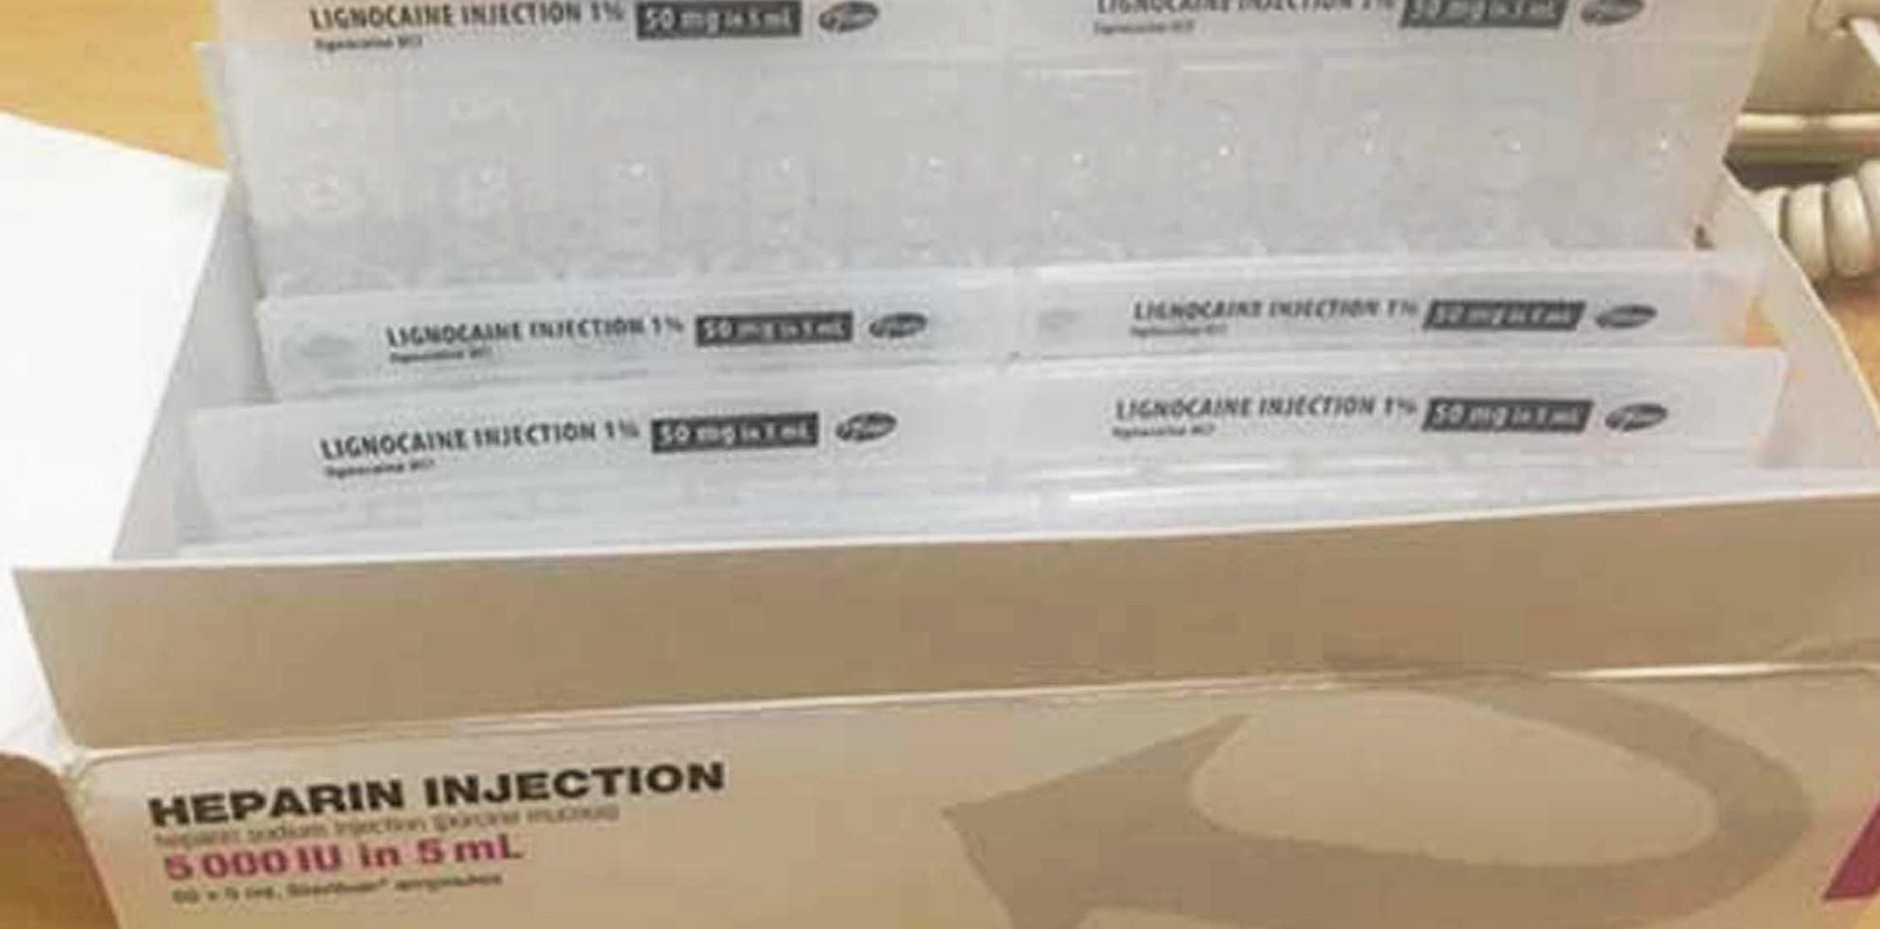 The Lignocaine ampoules found inside Heparin packaging.